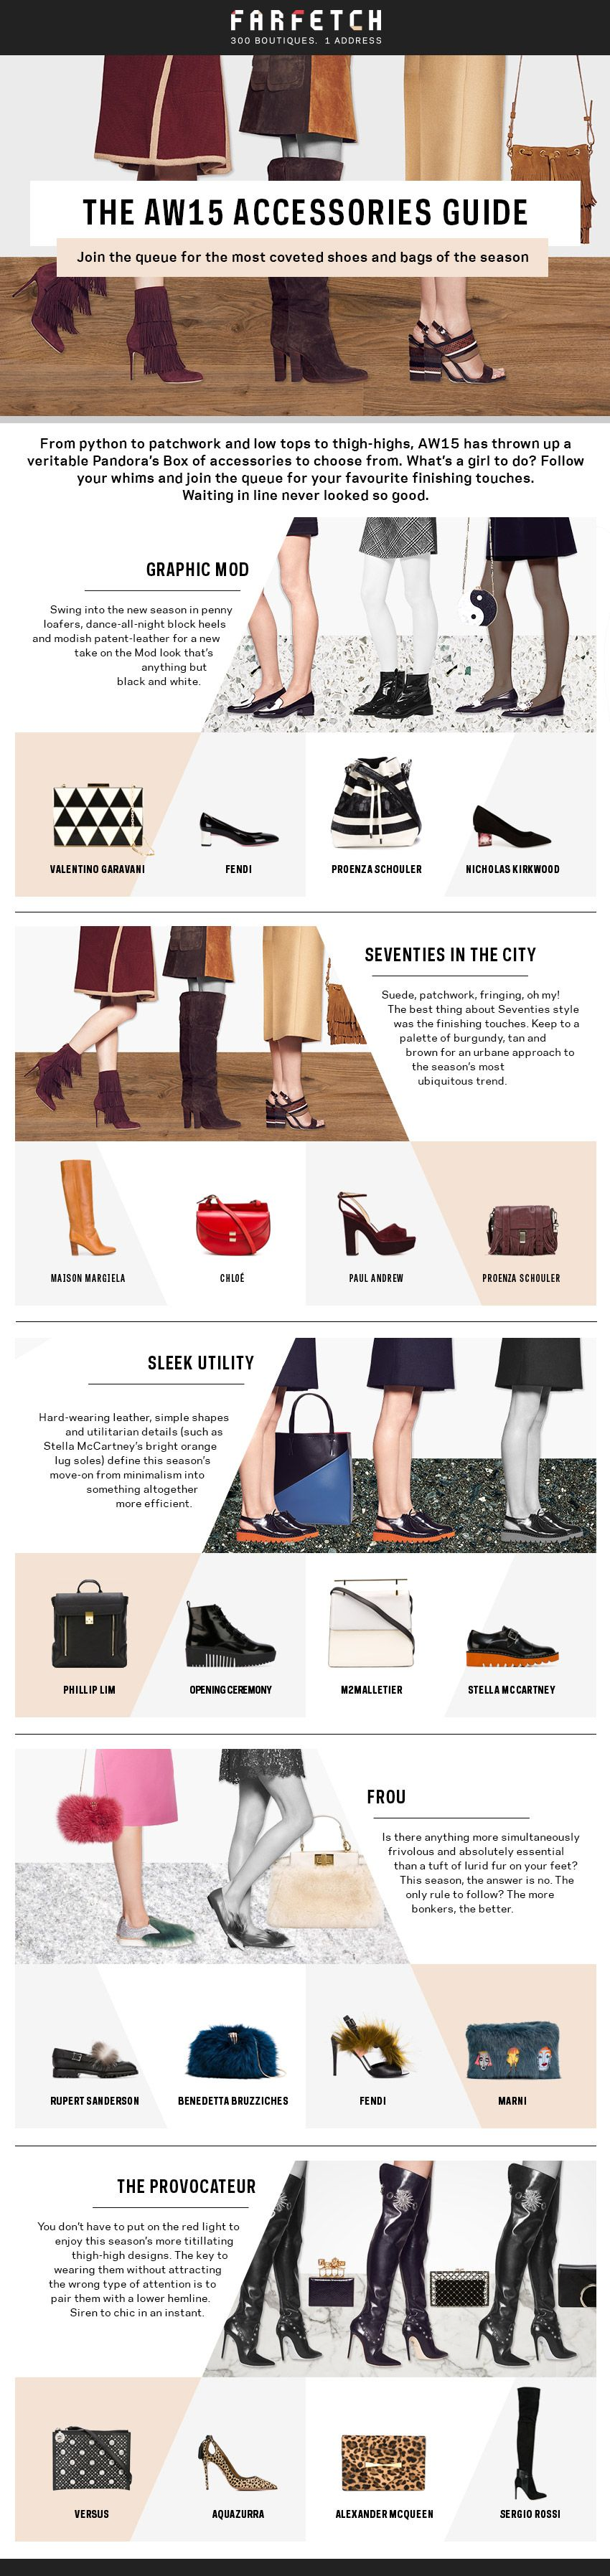 The AW 15 Accessories Guide